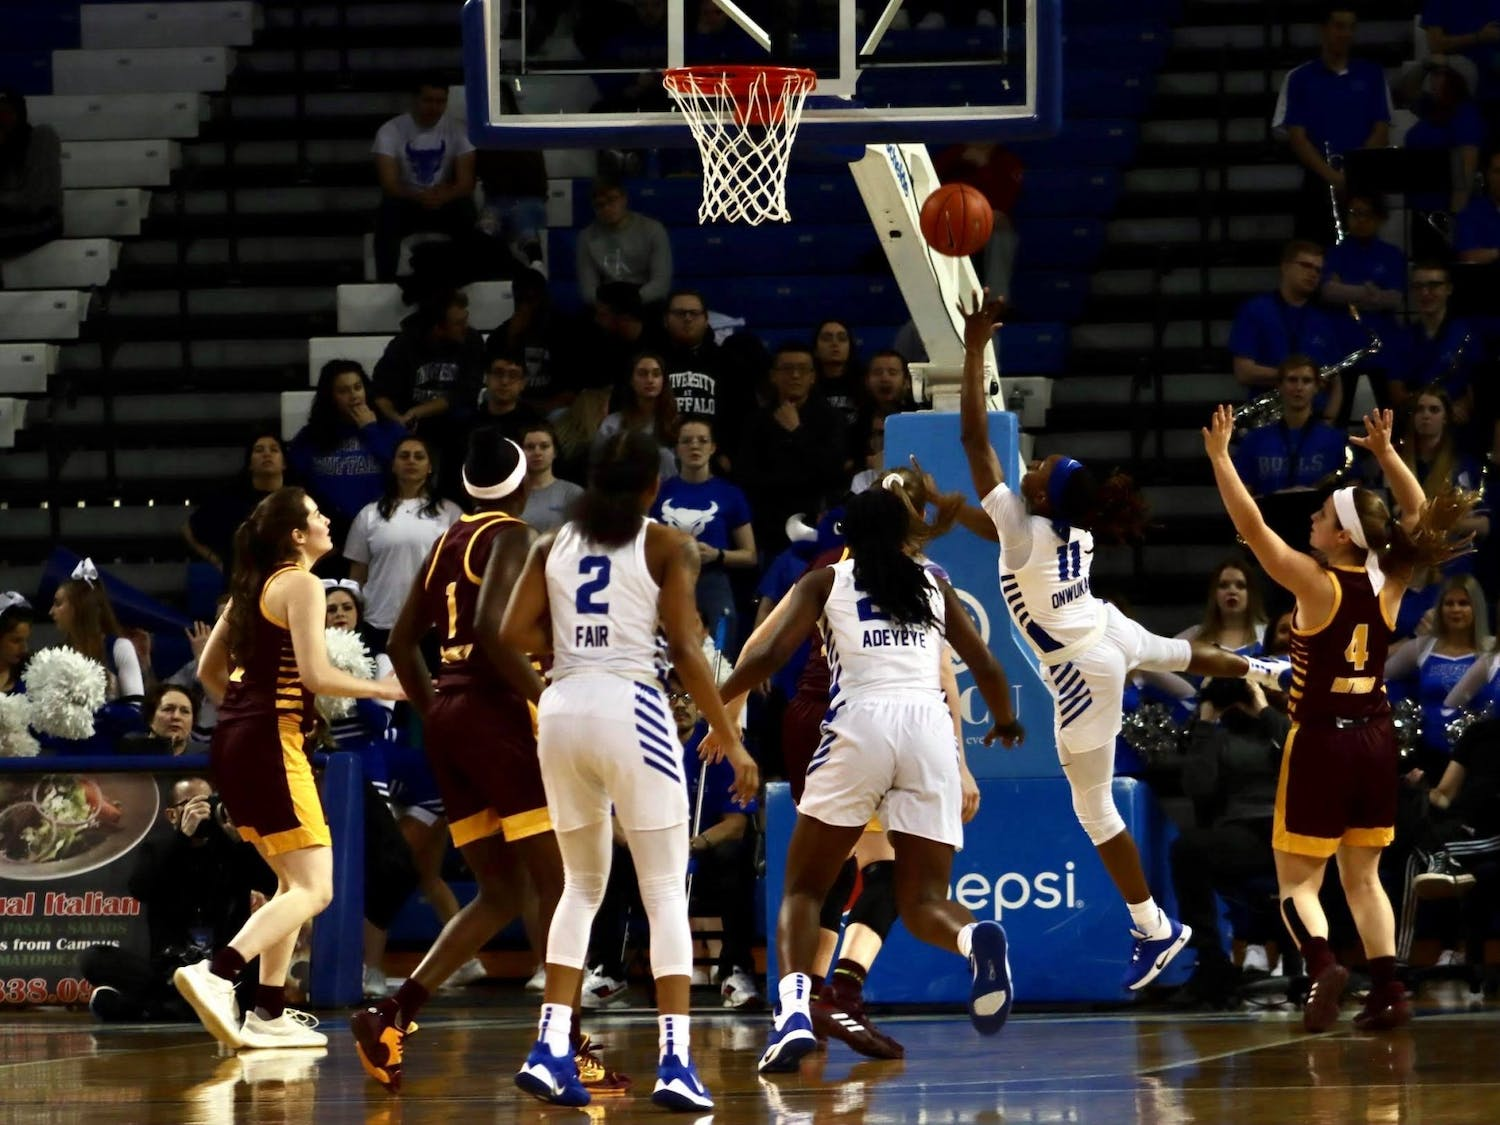 Senior guard Theresa Onwuka goes for a successful layup at Wednesday's game against Central Michigan.